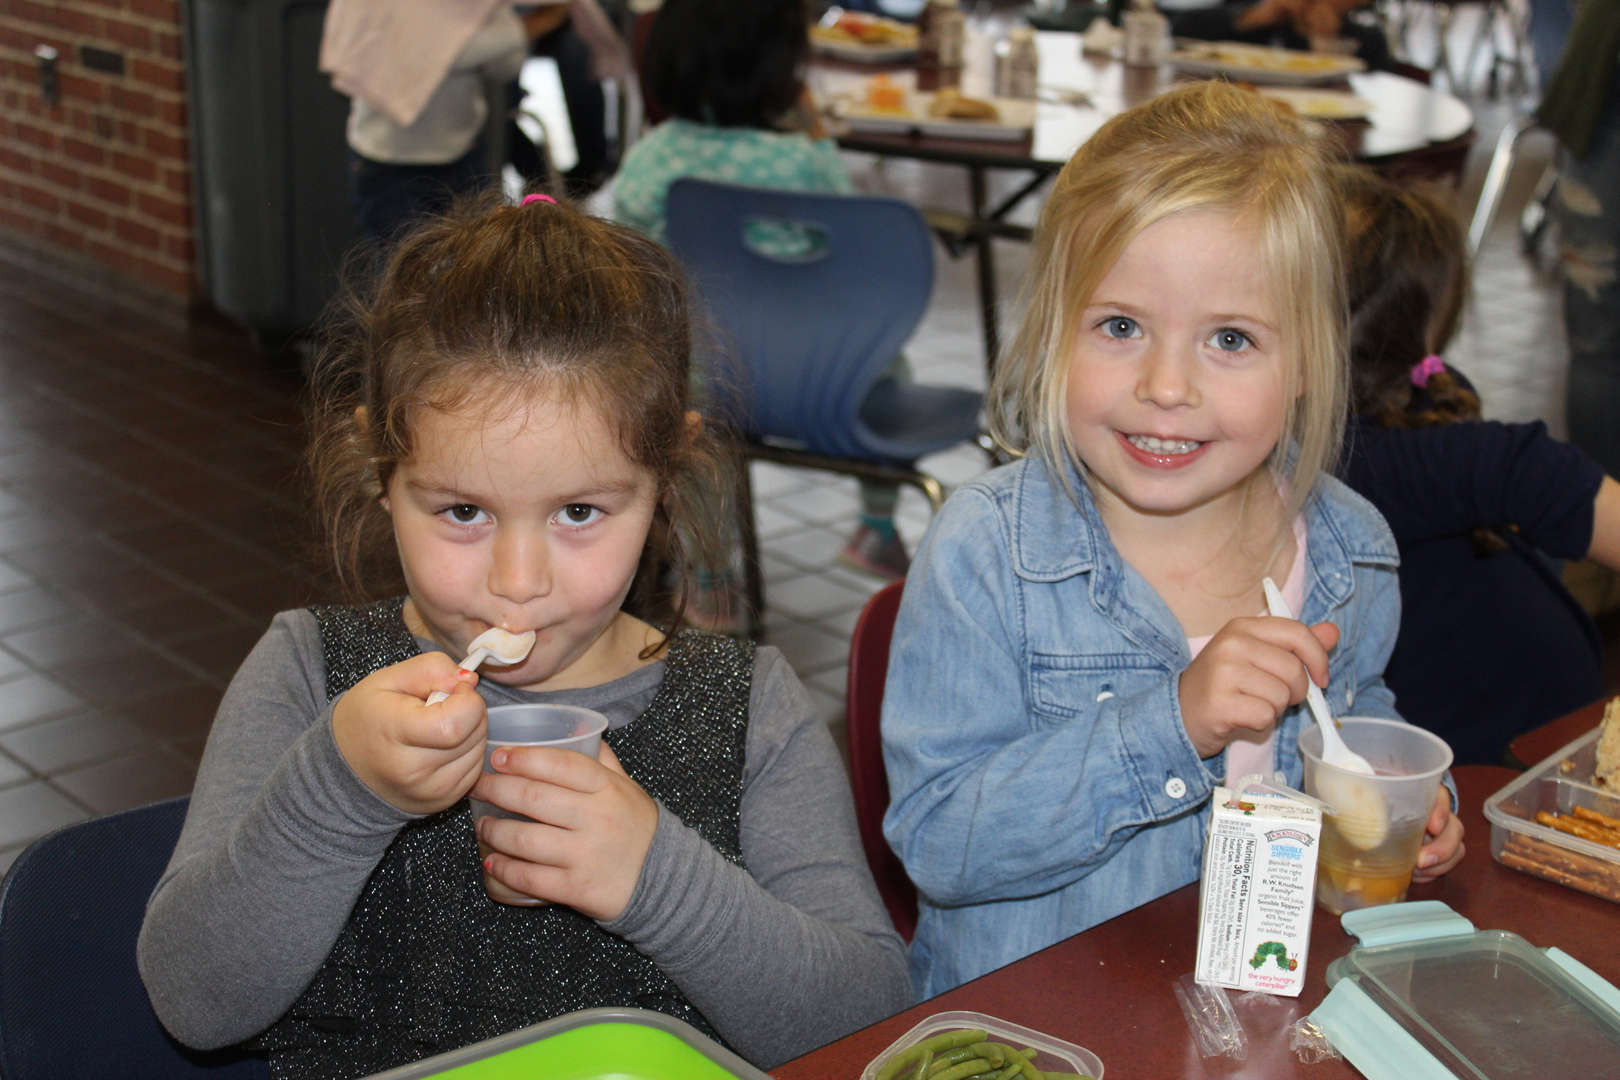 Two girls eat soup in the school cafeteria.